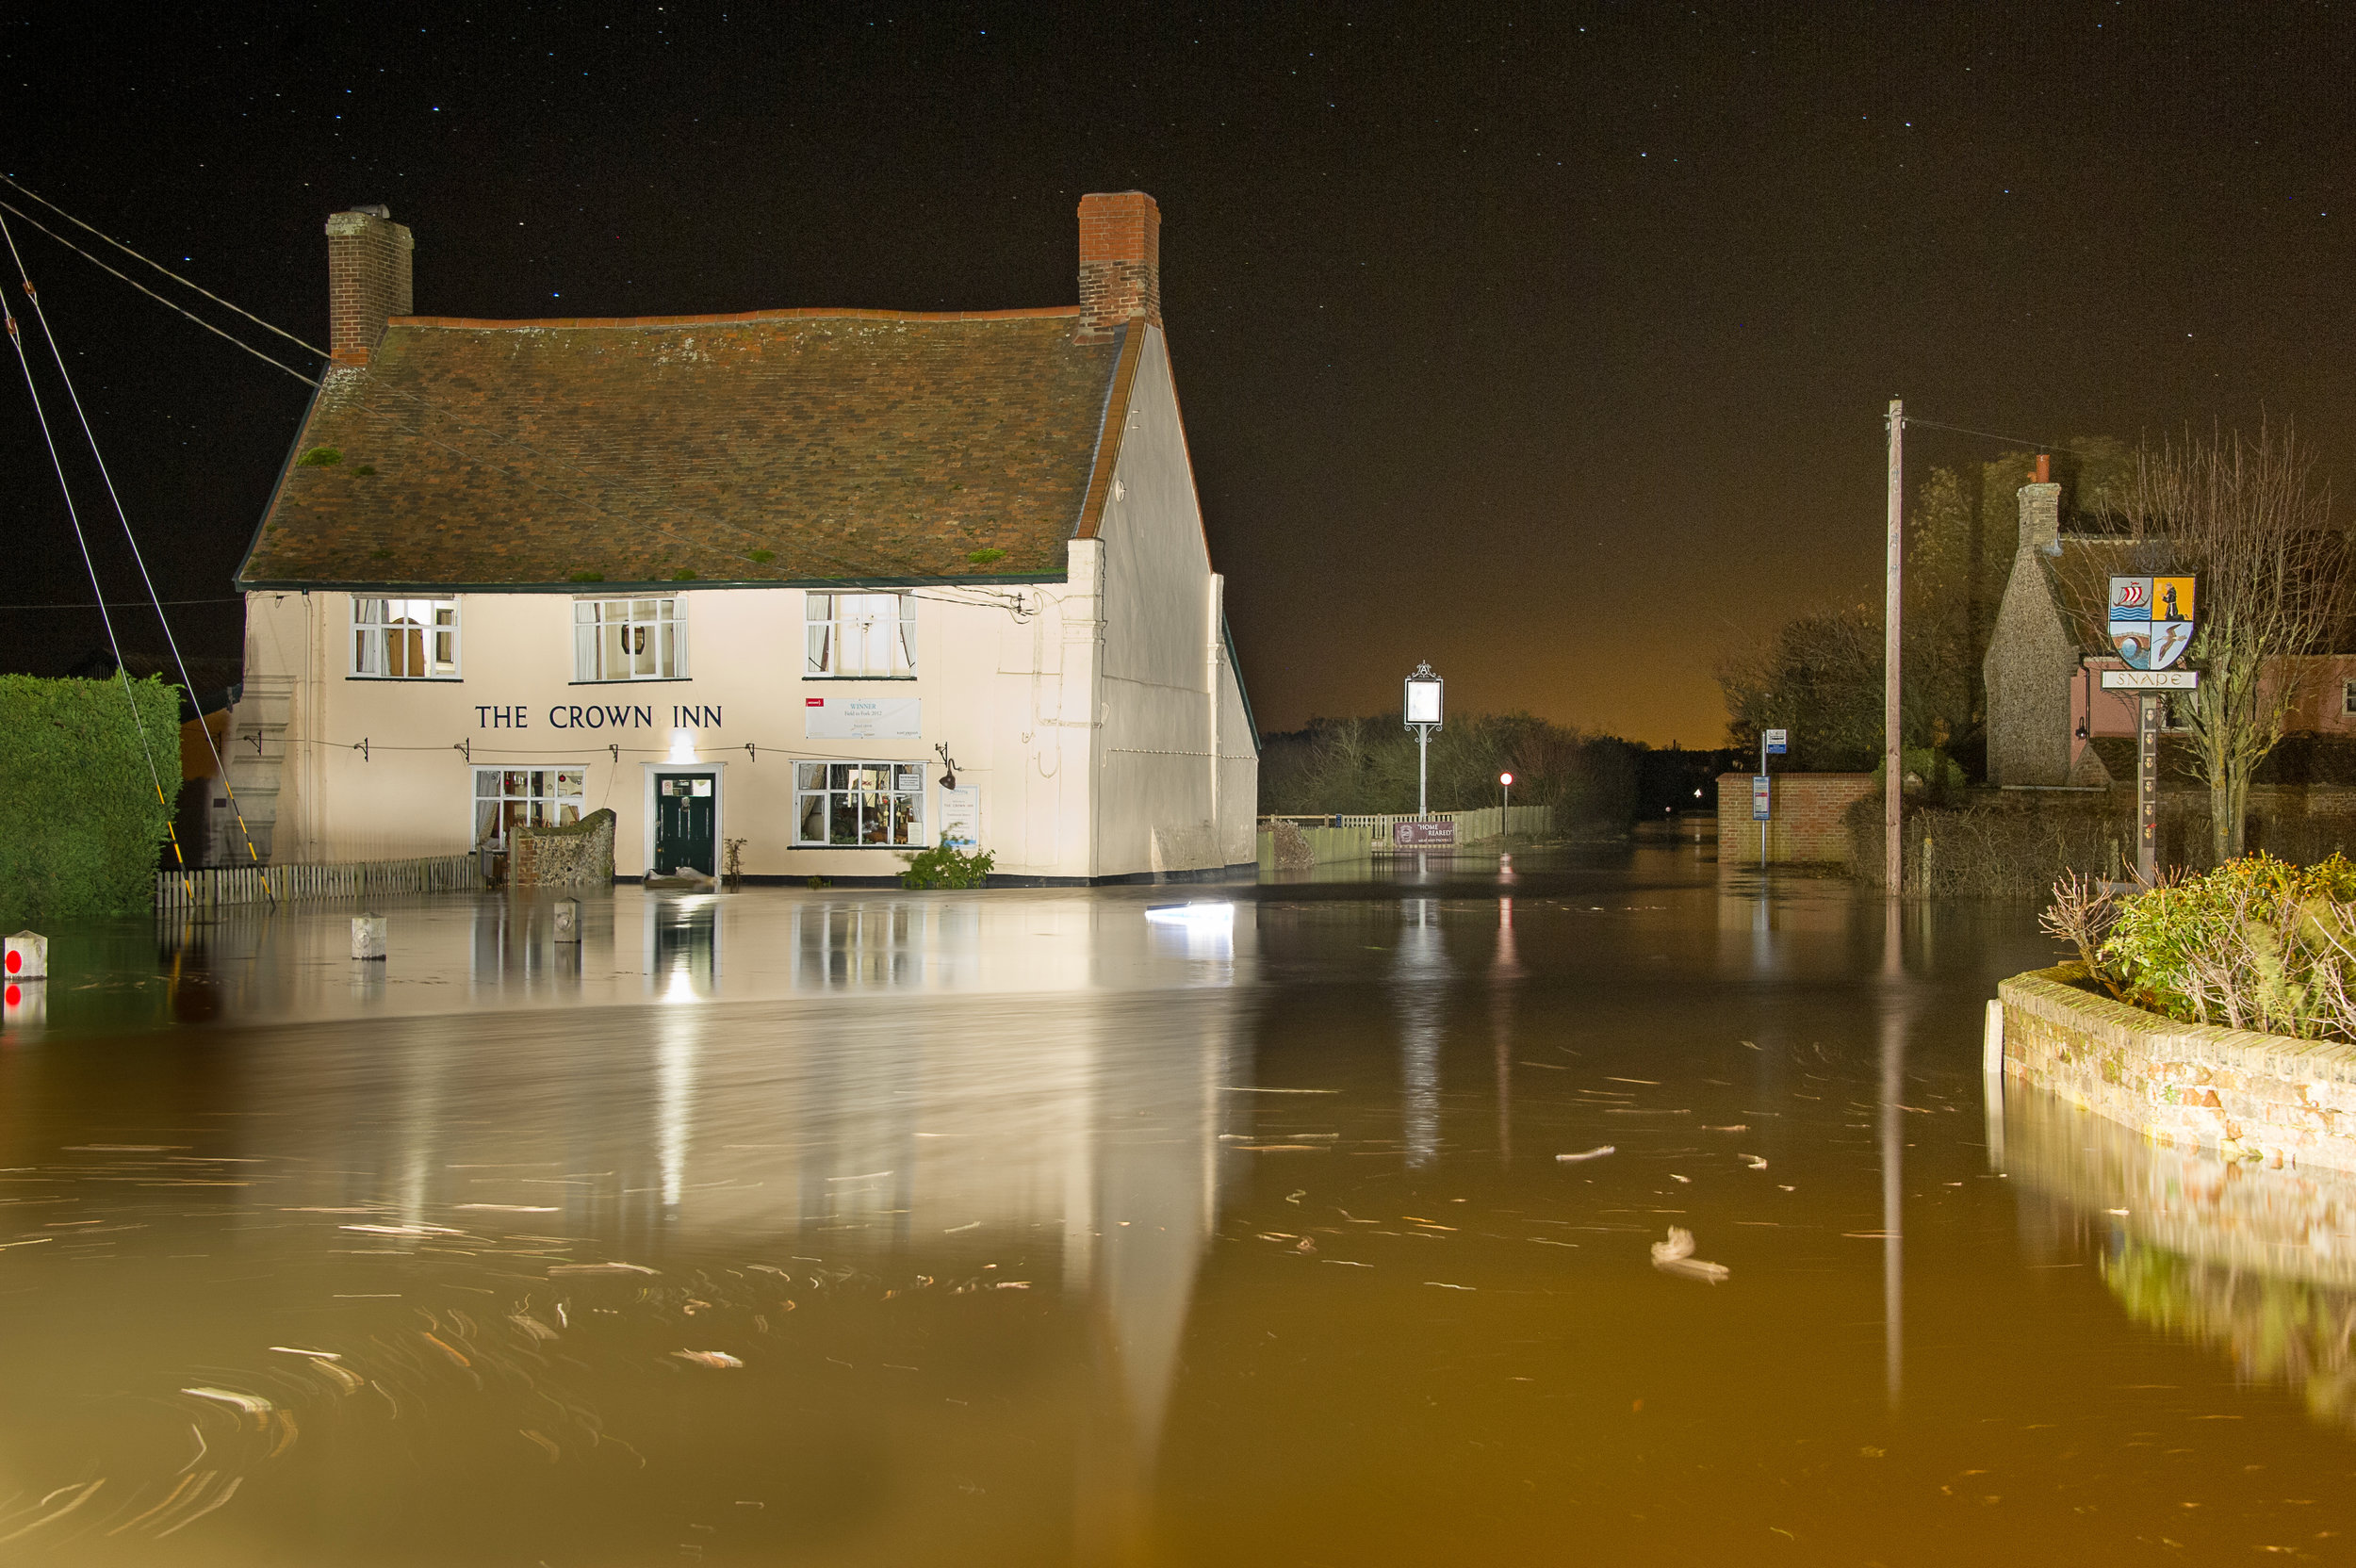 26 homes were flooded in Snape during the 2013 storm surge